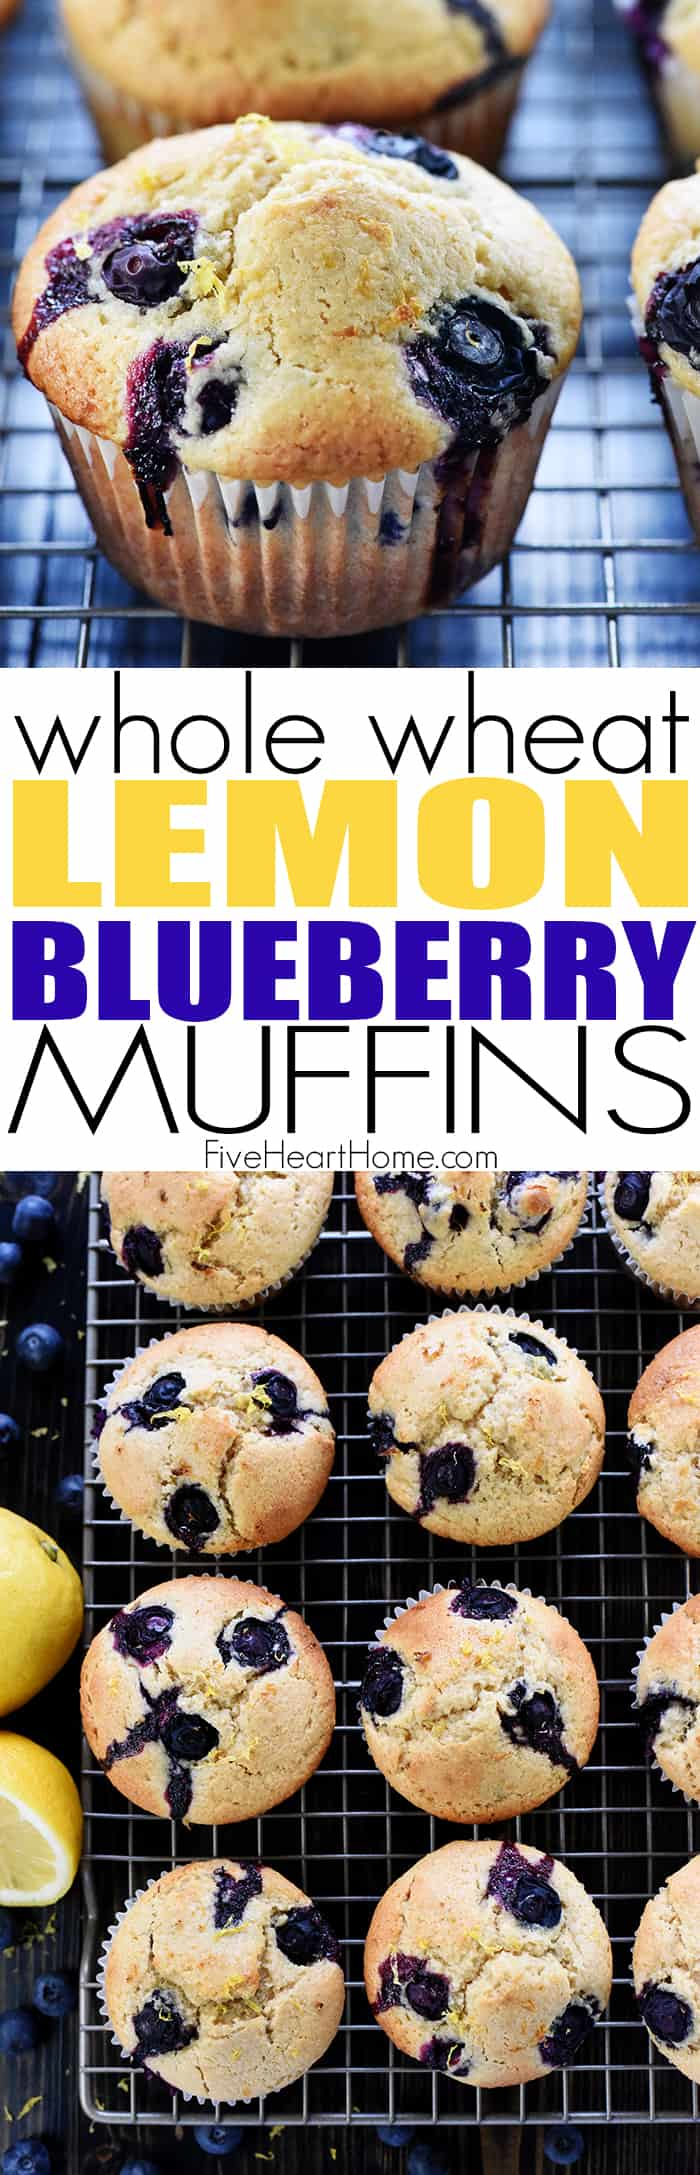 Whole Wheat Lemon Blueberry Muffins Collage with Text Overlay